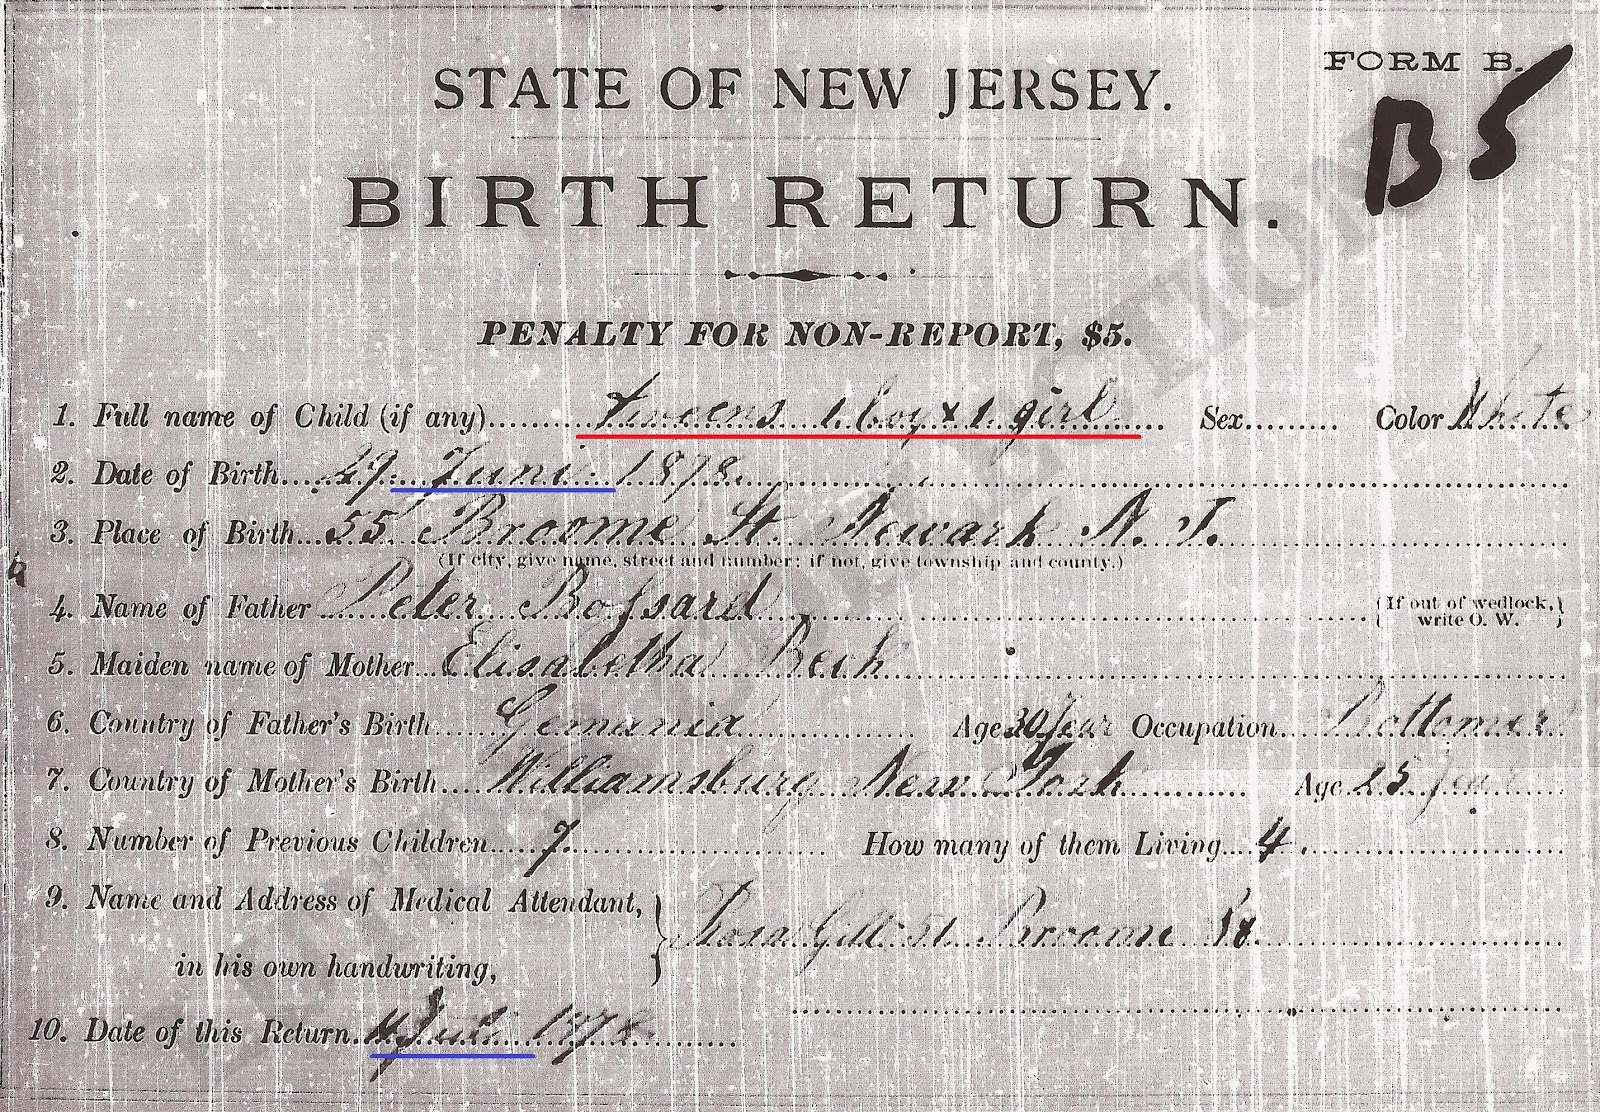 Family History Research By Jody Lutter Birth Certificate Of Twins